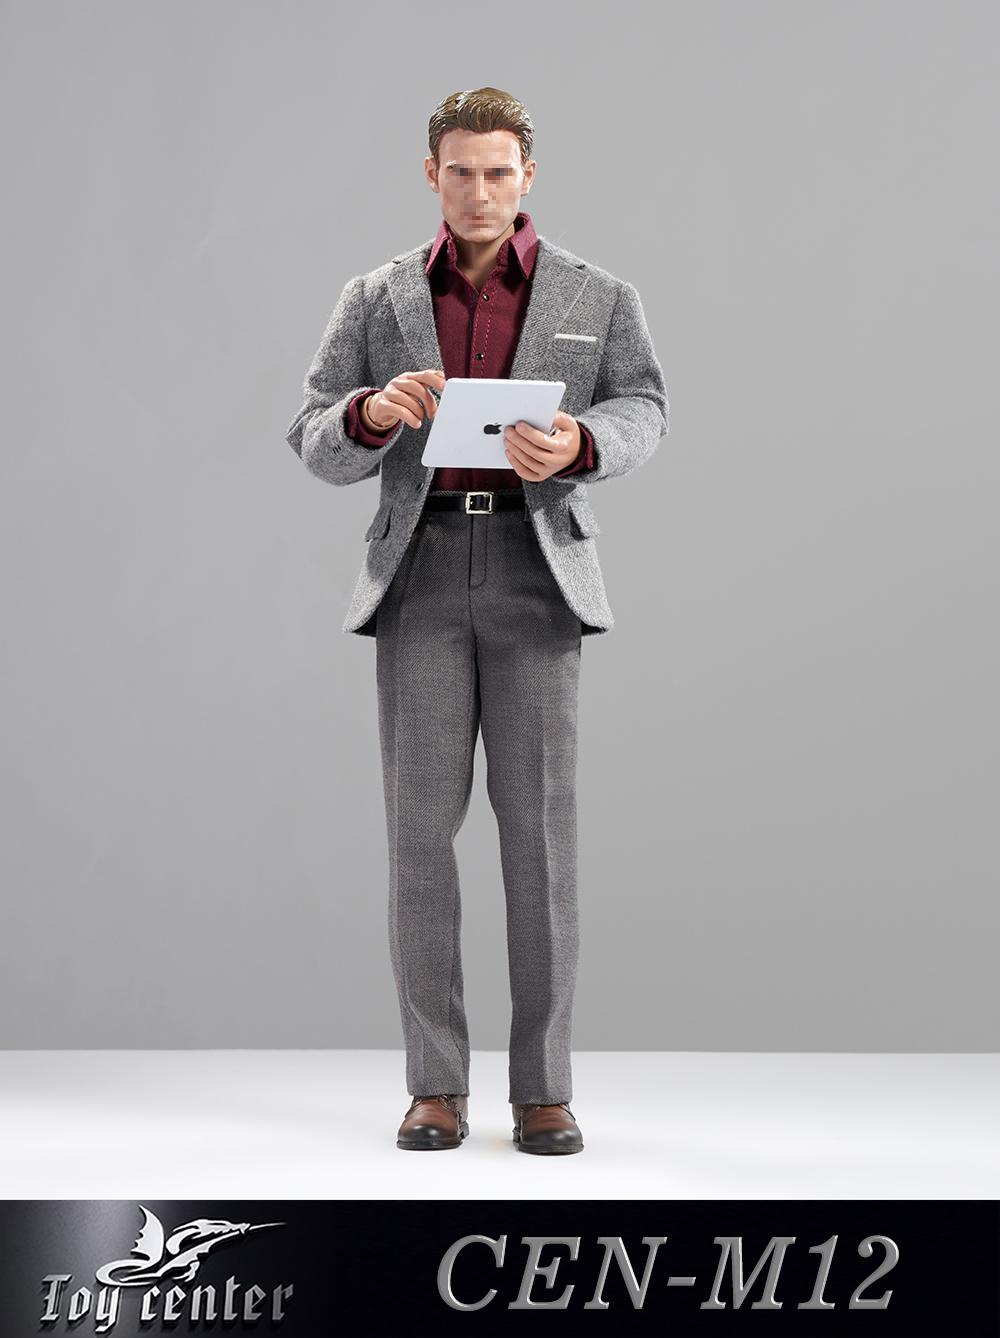 clothes - NEW PRODUCT: Toy center: 1/6 US team old casual suit CEN-M12# 16064510